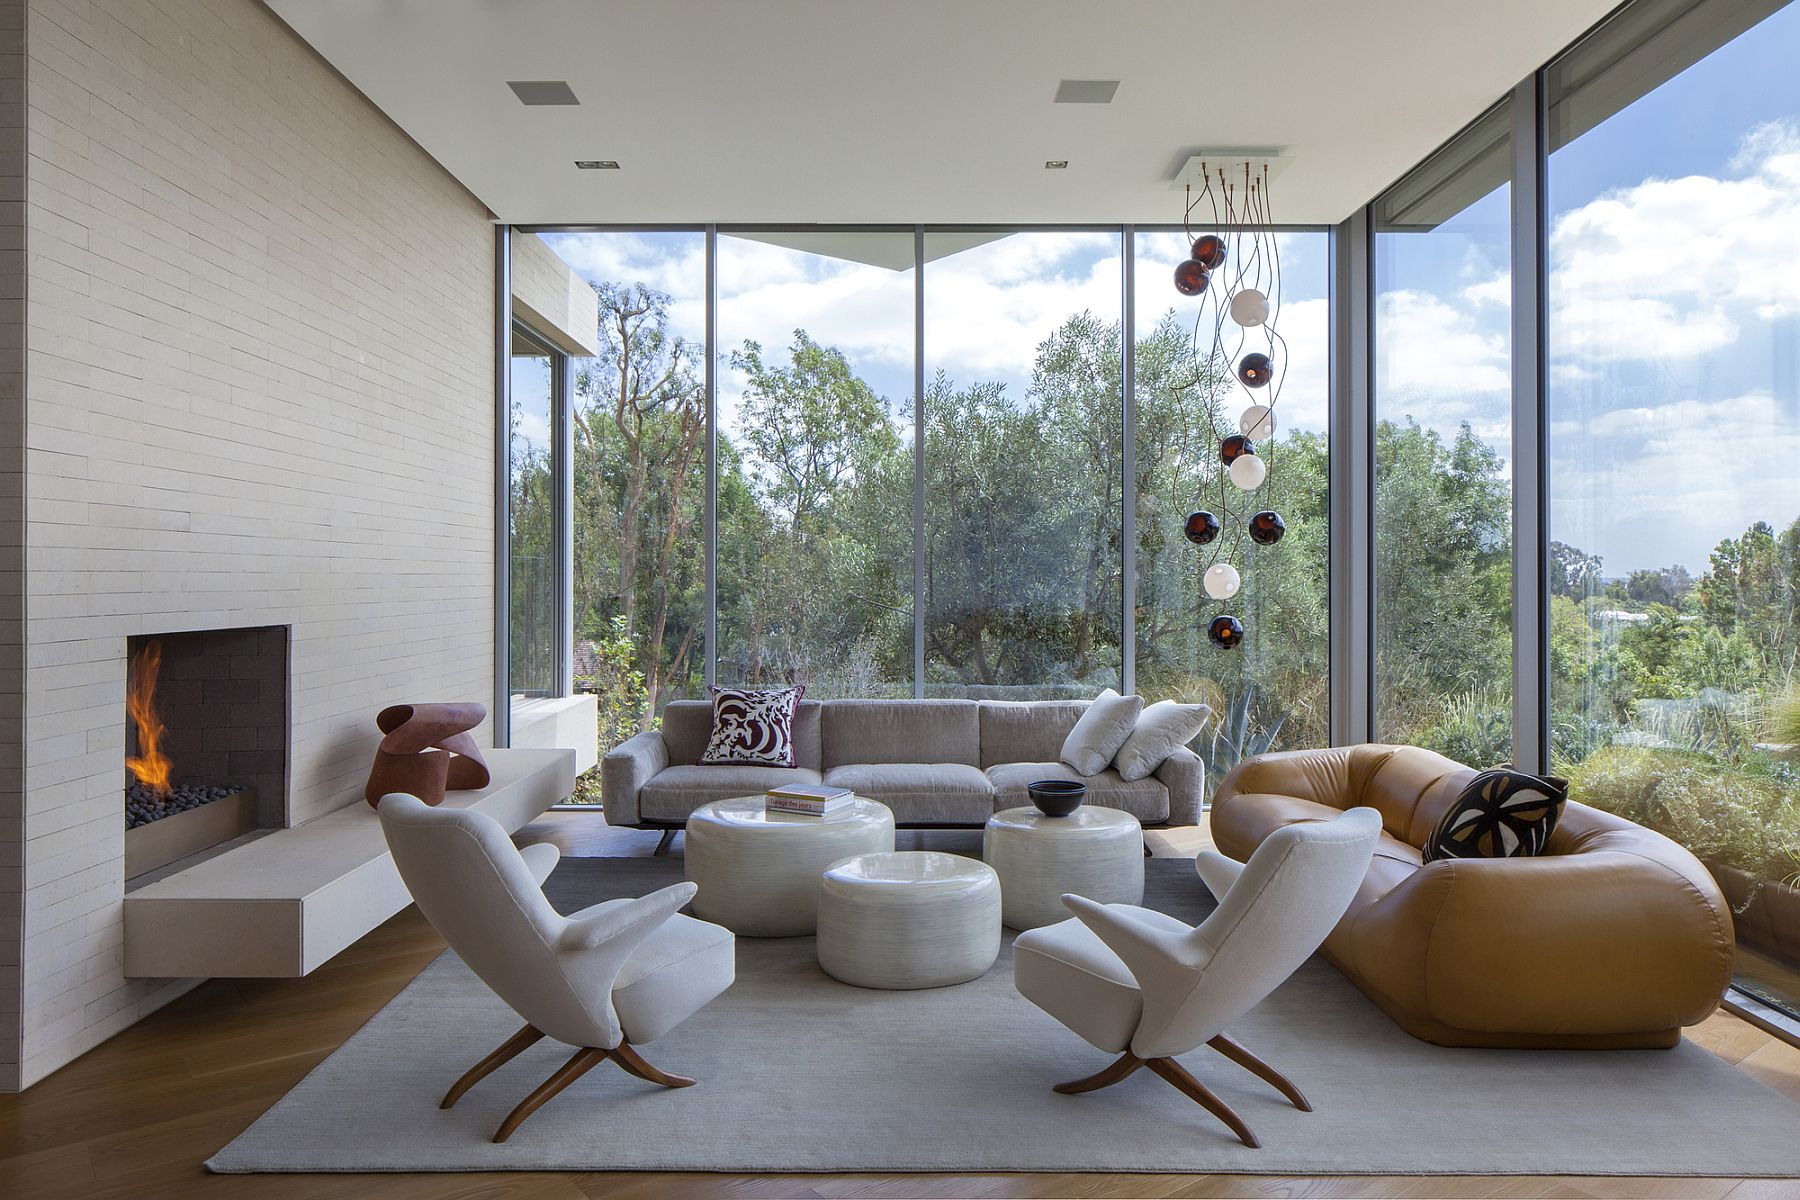 Floor-to-ceiling glass walls offer unabated views of the green valley below